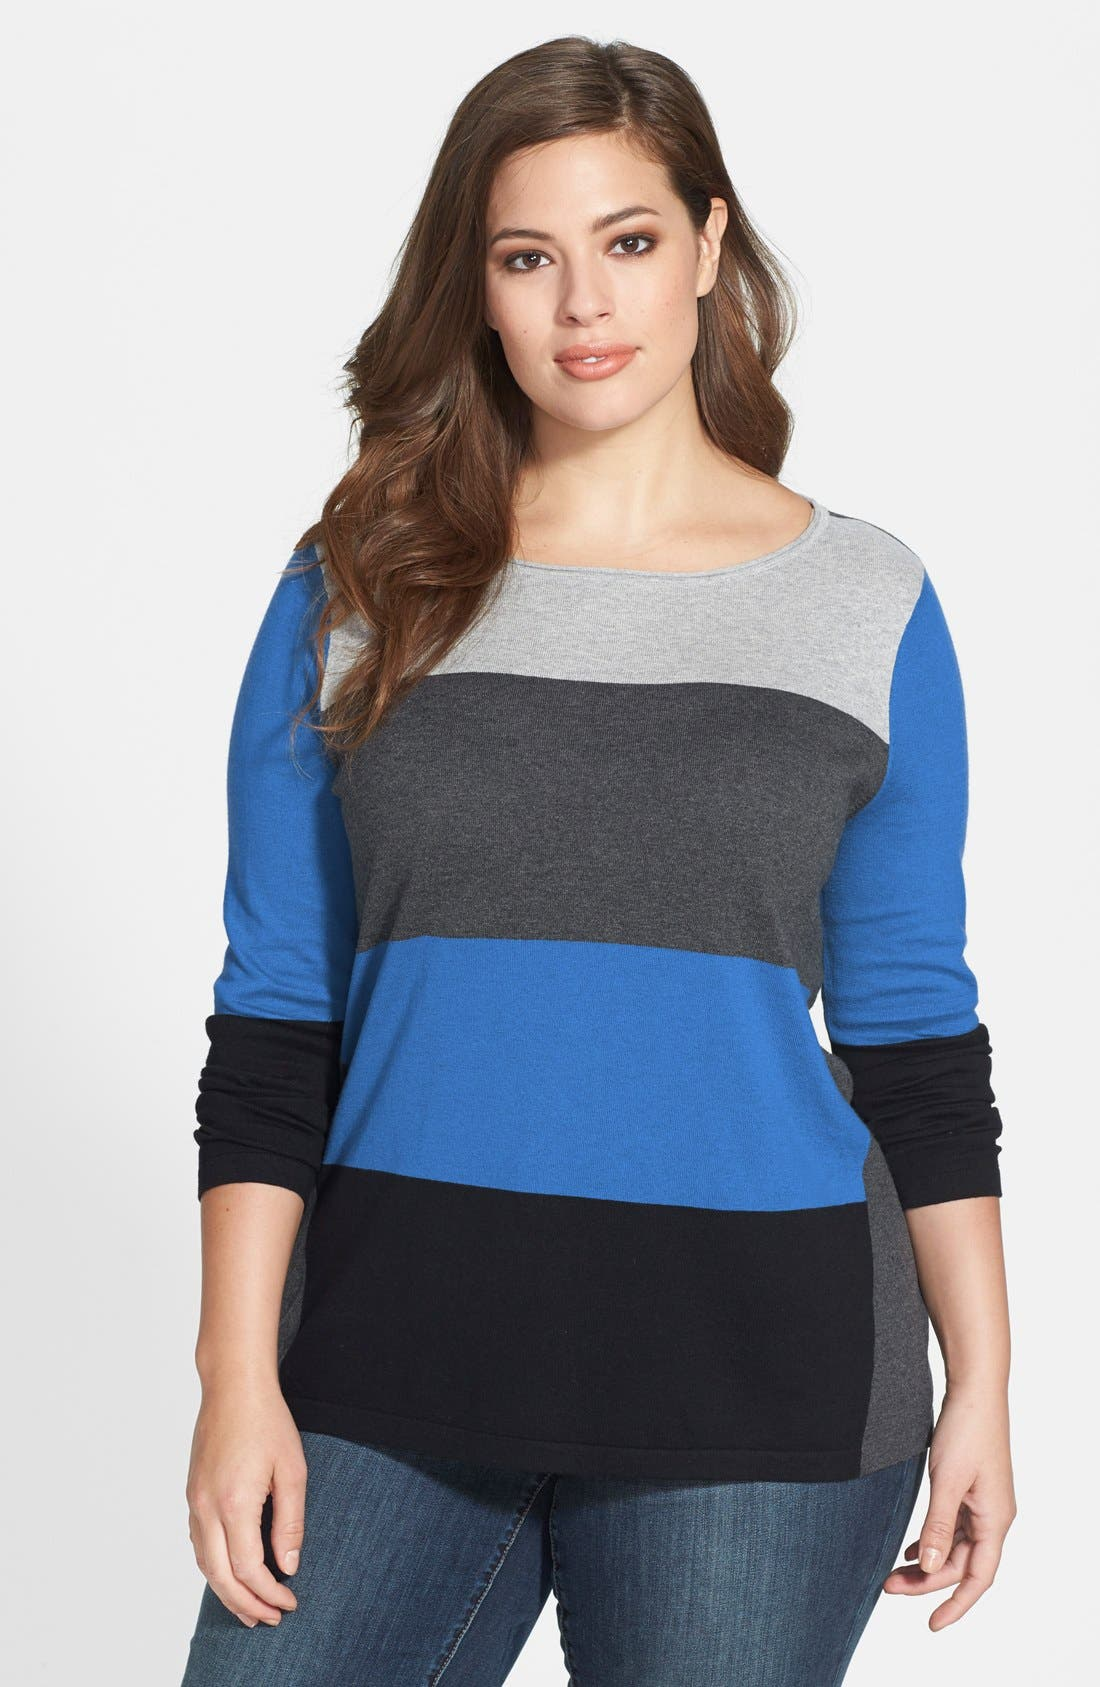 Alternate Image 1 Selected - Vince Camuto Colorblock Boatneck Sweater (Plus Size)